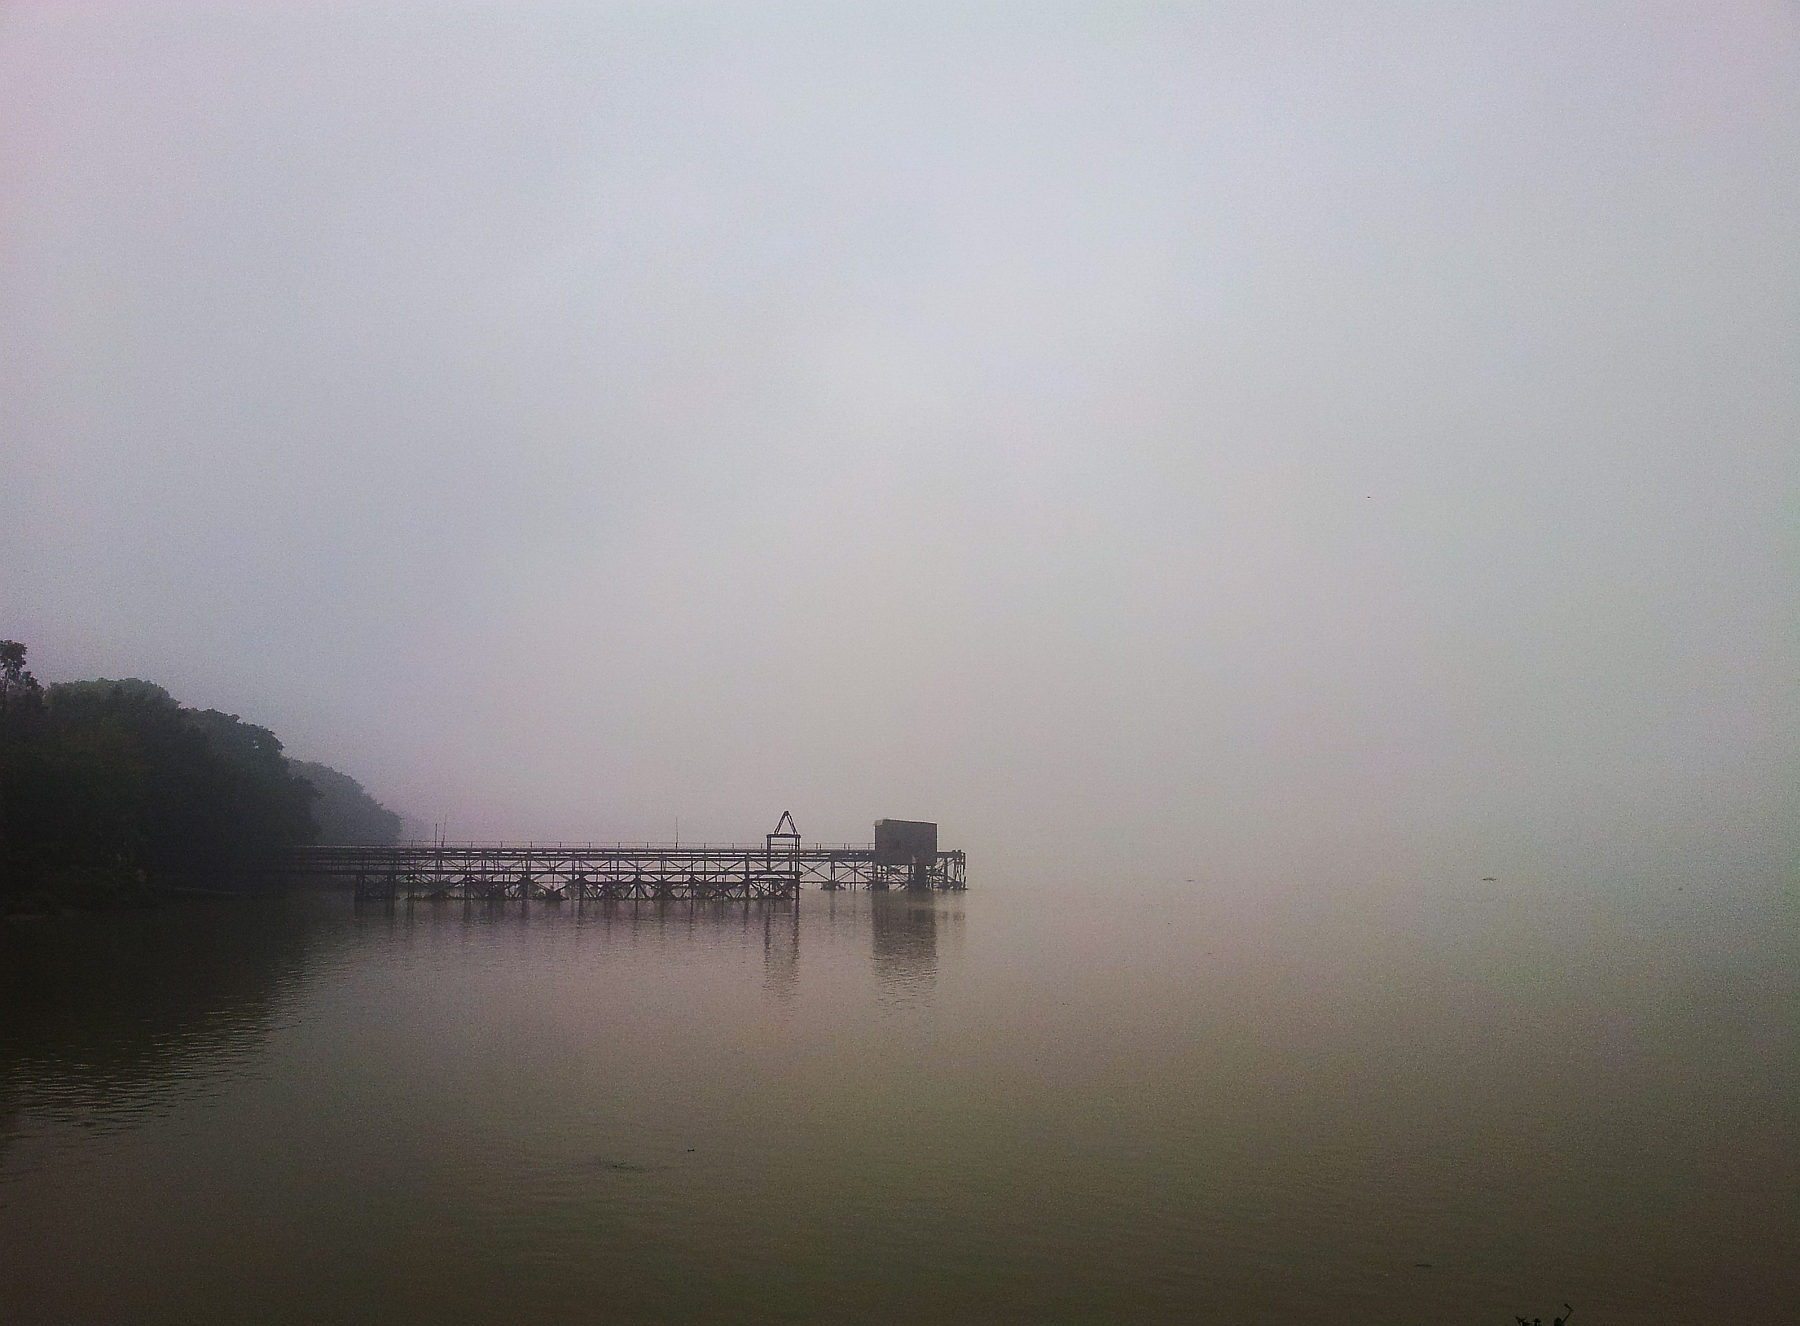 ... the calm waters of the River Hooghly highlight abandoned jetty in the early morning clouded with fog ... heralding the setting in of winters ...